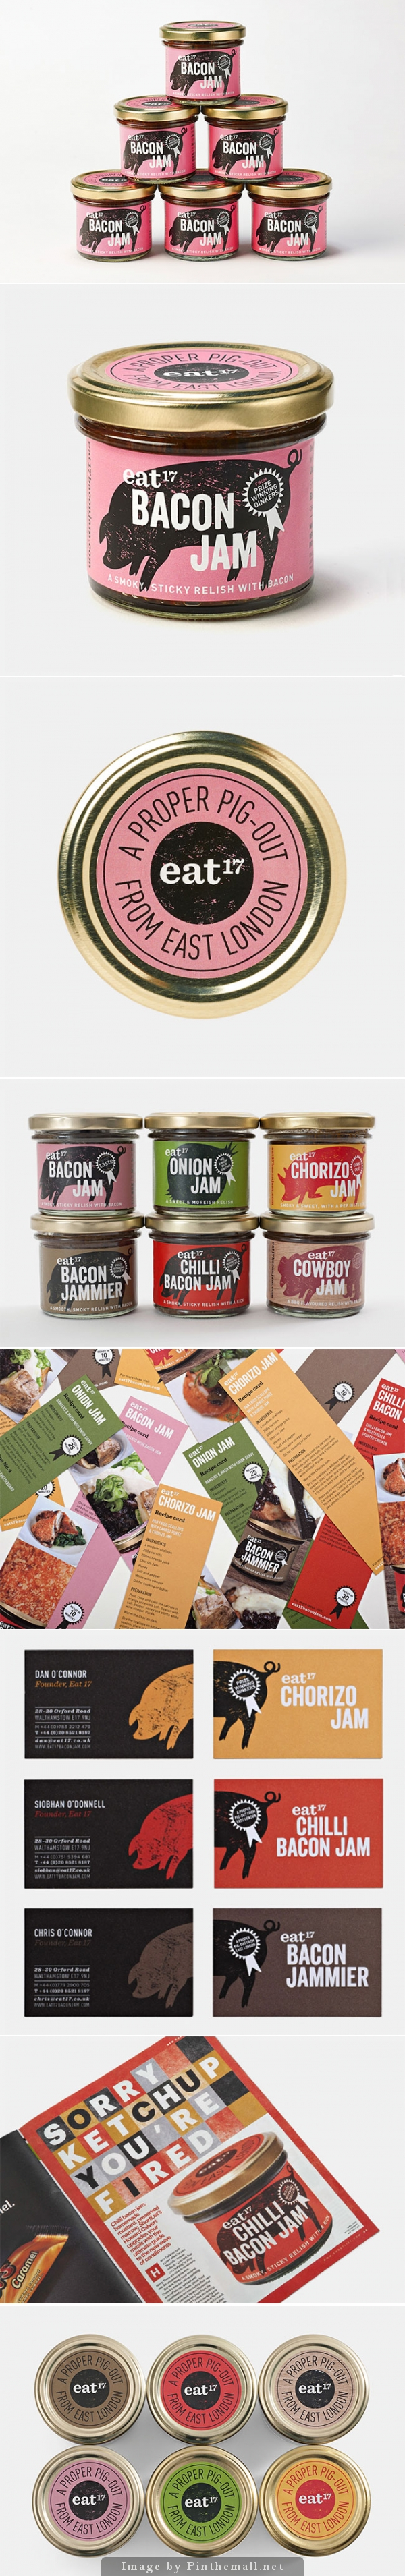 Eat 17 Bacon Jam by Robin Kadrnka of Together